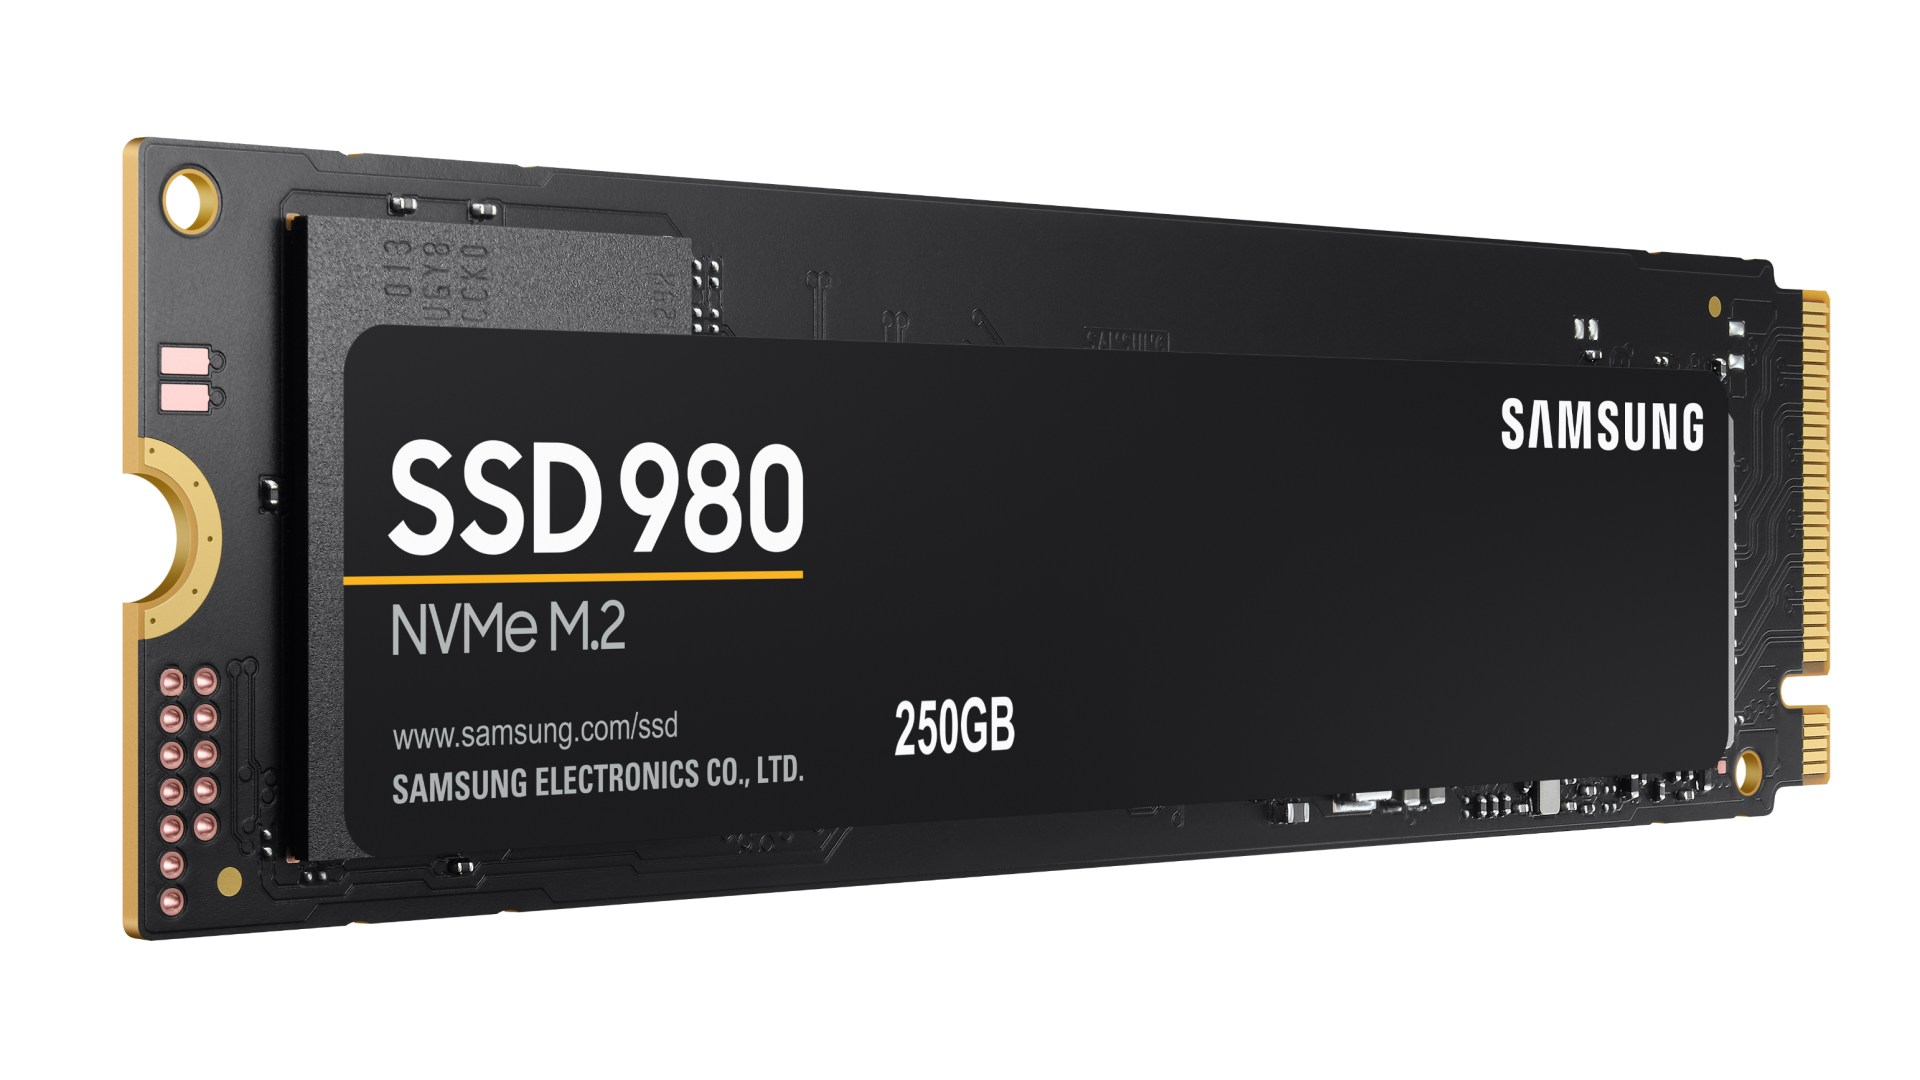 Samsung, Ssd, Solid State Drive, M.2, NVMe, V-Nand, MLC, PCIe 3.0 x4, Samsung SSD 980, Samsung 980 SSD, DRAM-less, DRAM-Cache